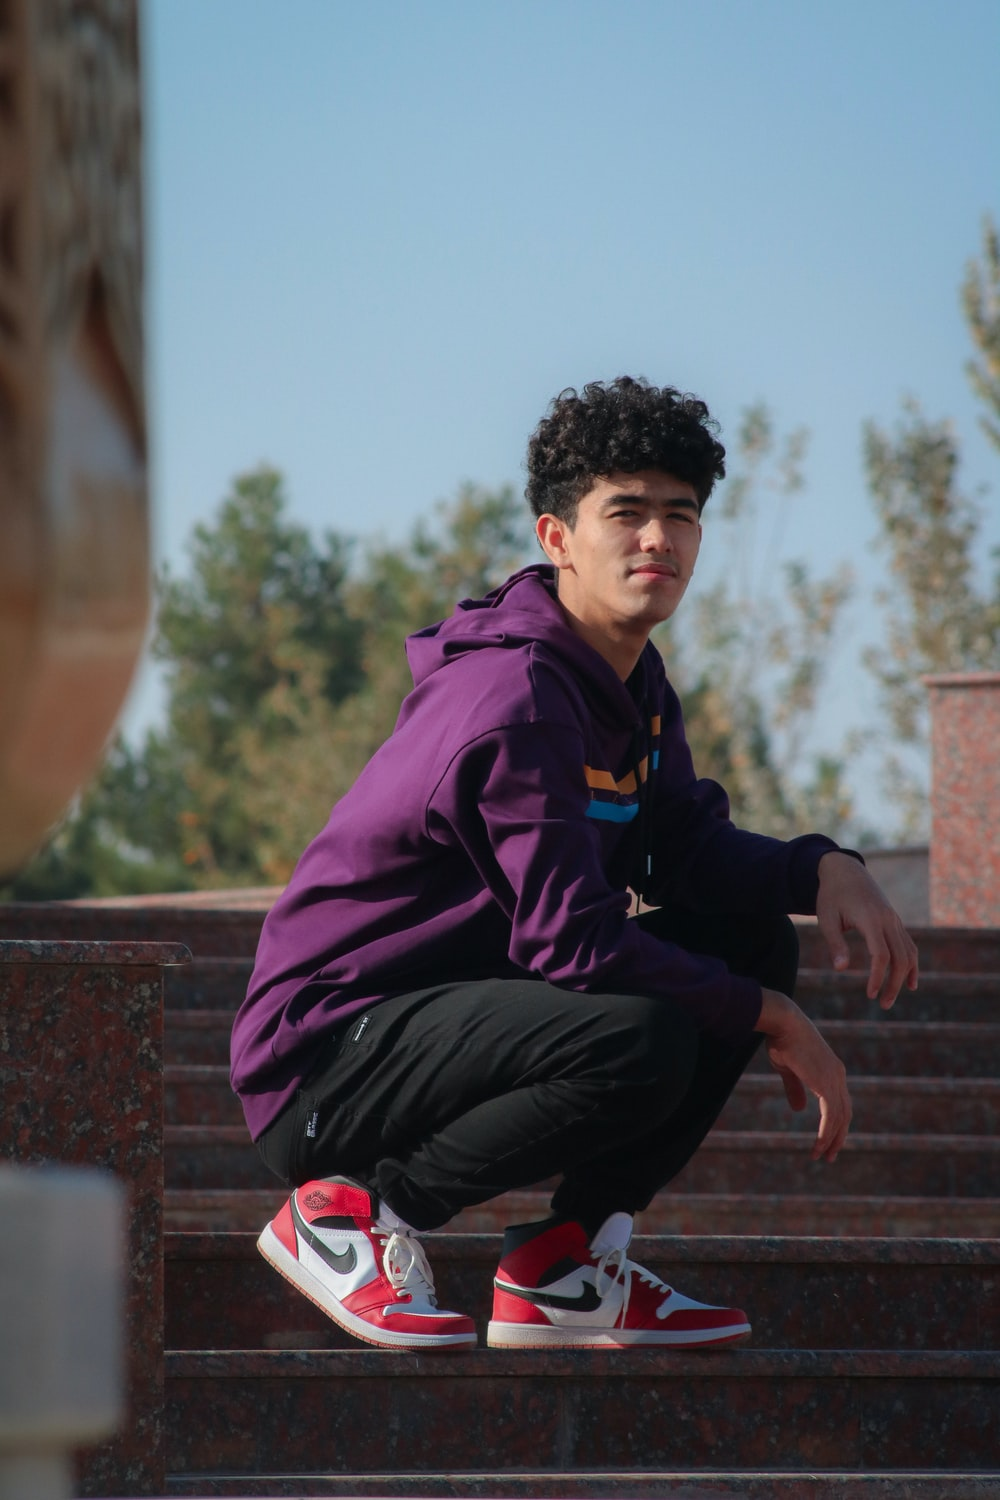 man in purple and black jacket sitting on brown concrete stairs during daytime